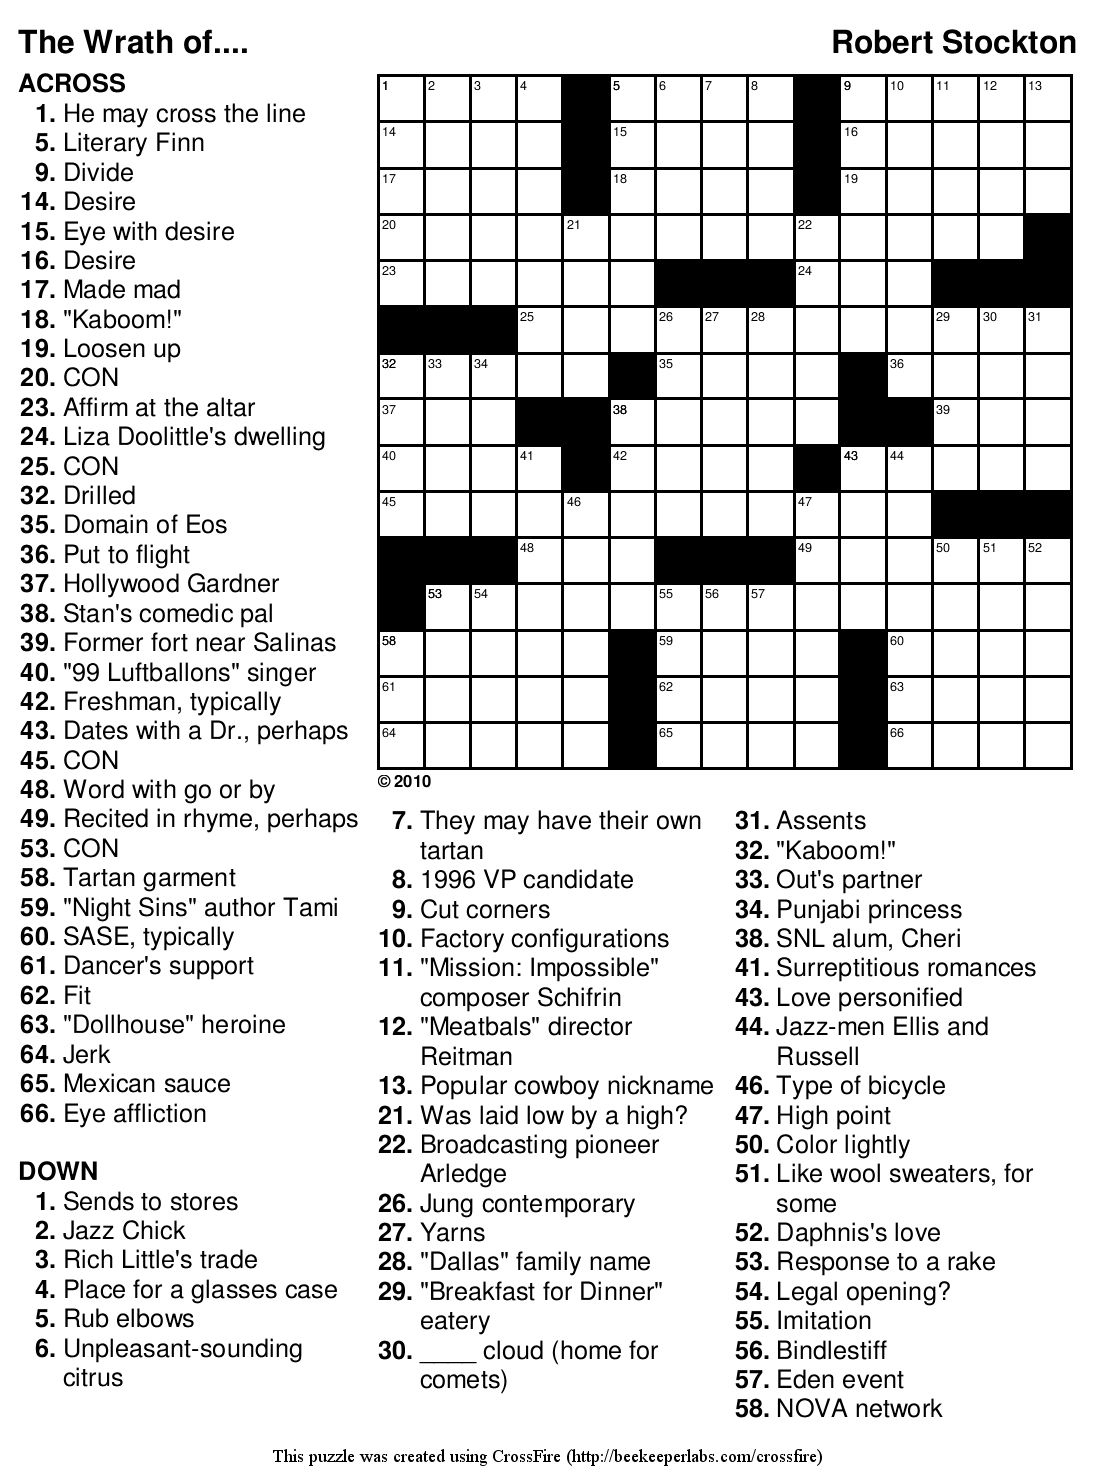 Marvelous Crossword Puzzles Easy Printable Free Org | Chas's Board - Printable Crossword Puzzles Easy To Medium